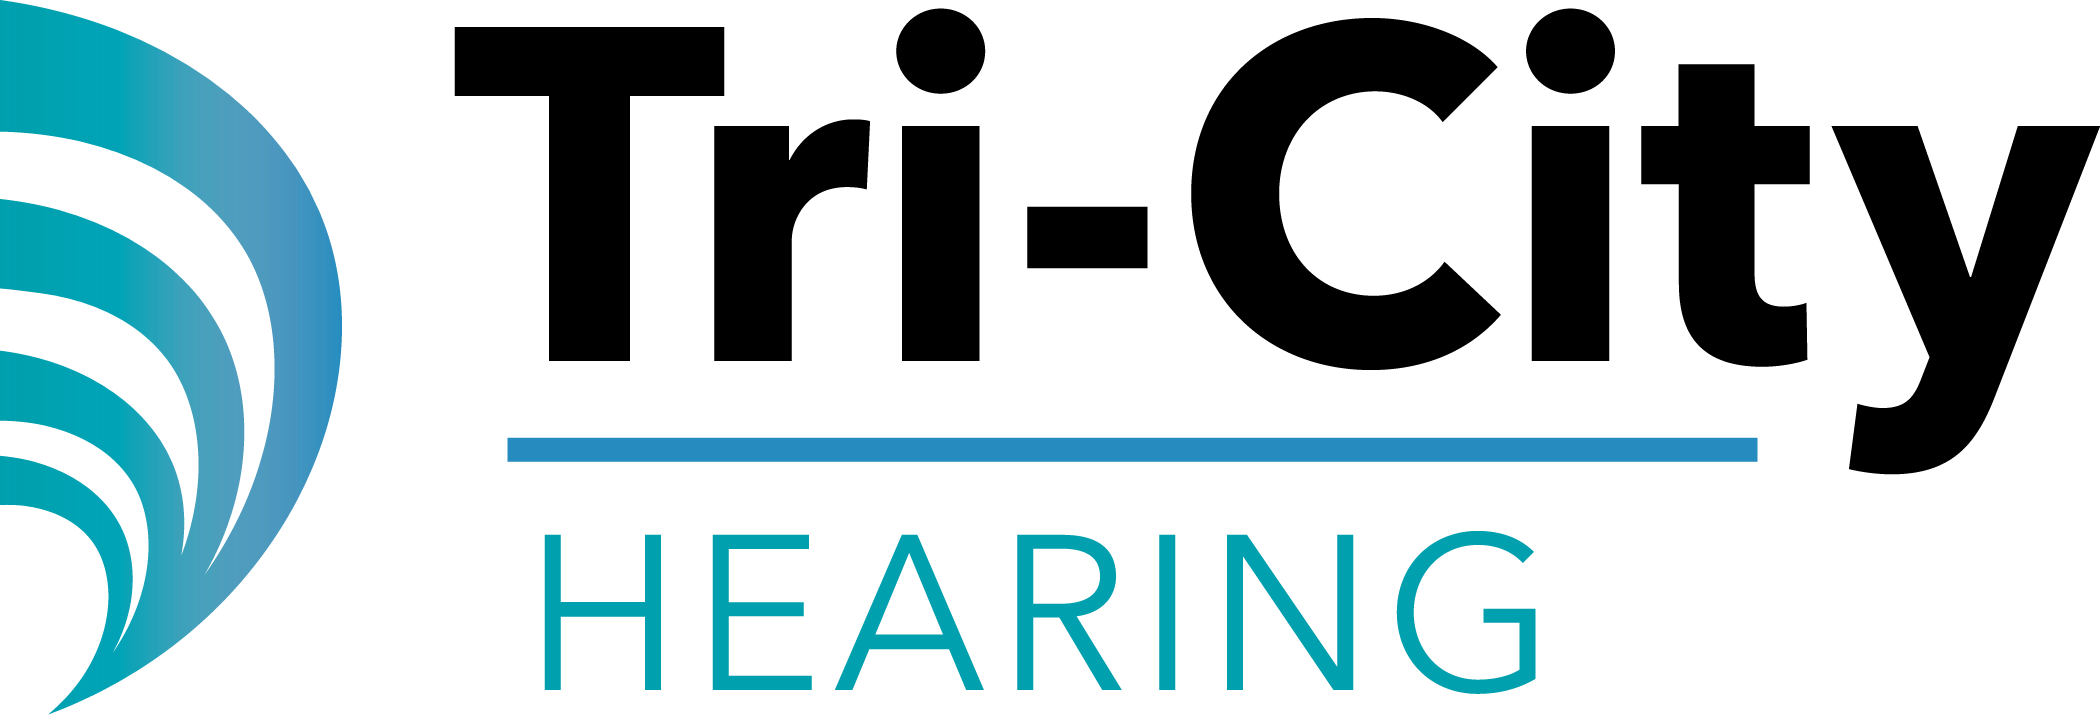 TriCityHearing-Full Logo